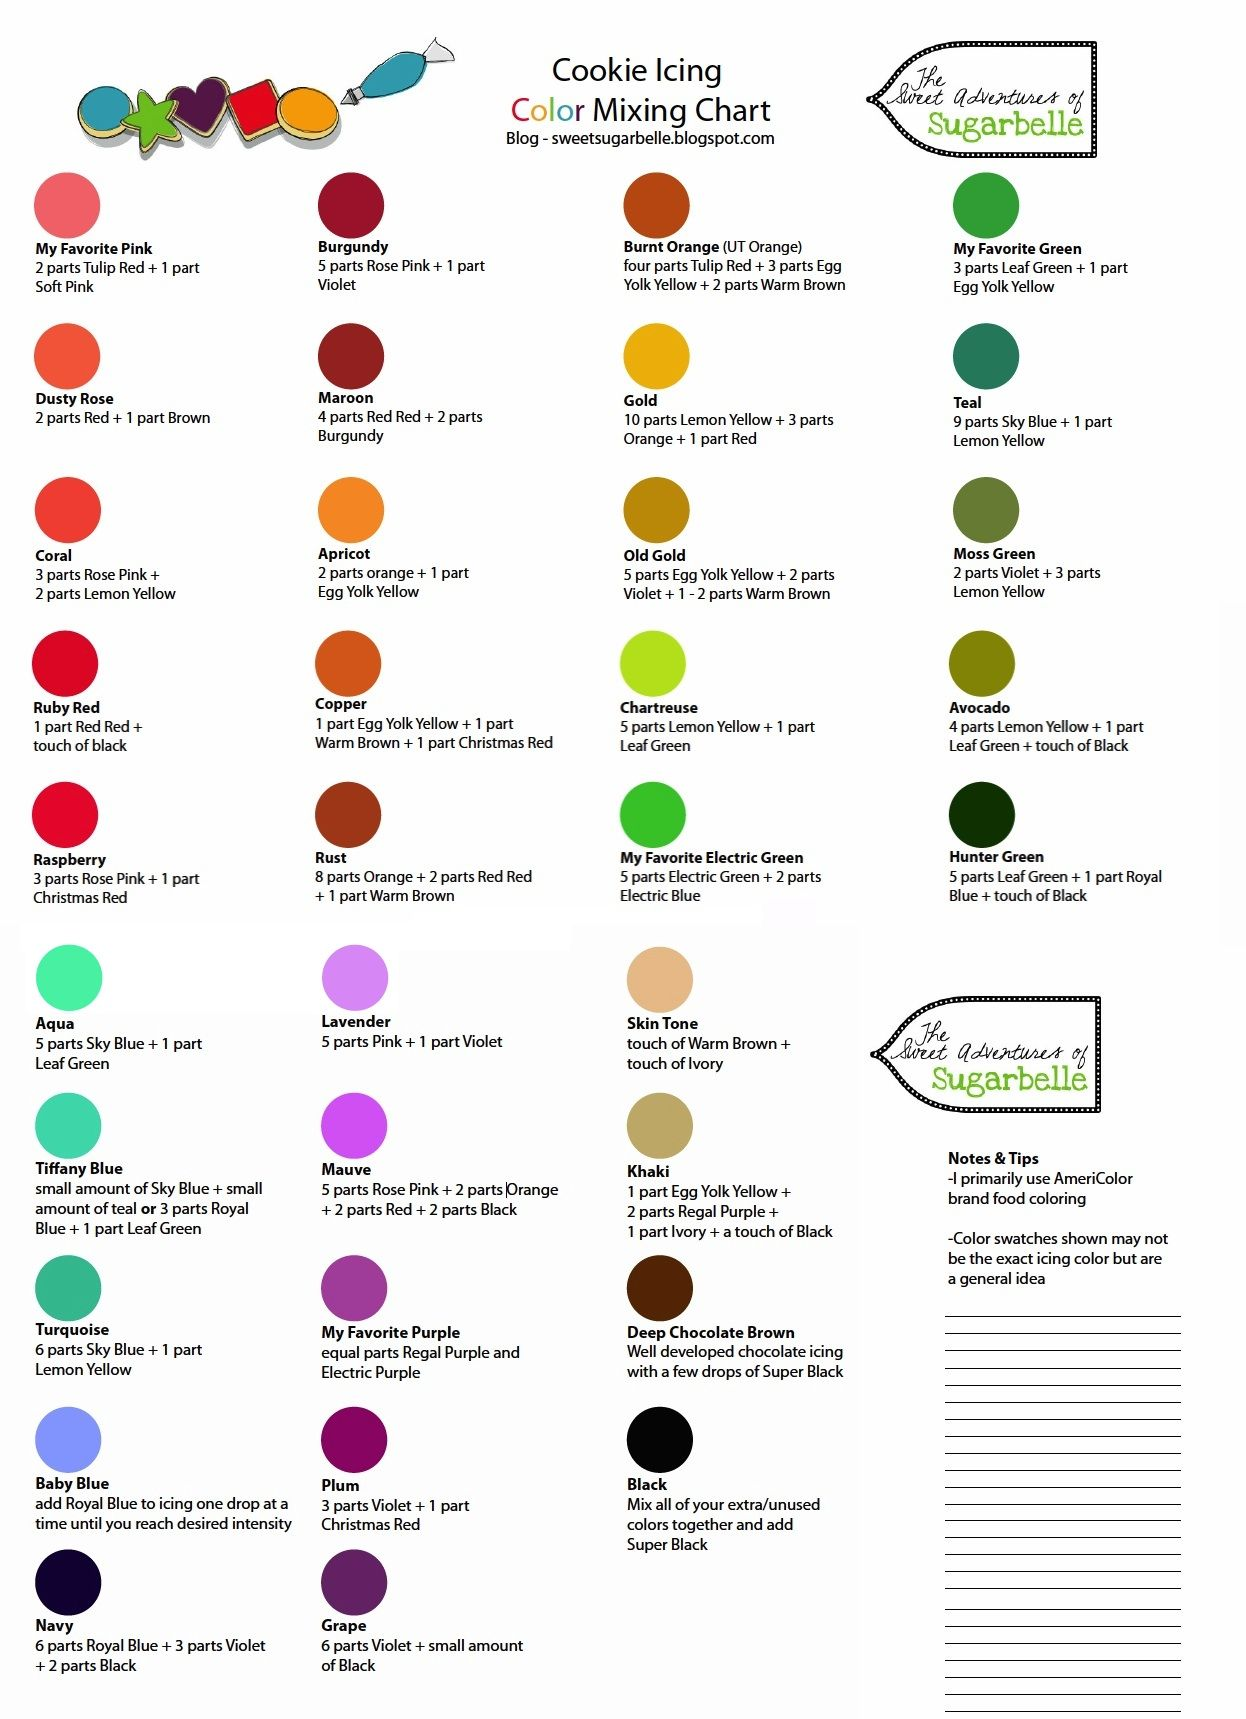 Cookie Icing Color Mixing Chart Courtesy Of Sweetsugarbelle Com Icing Colors Icing Color Chart Cookie Icing